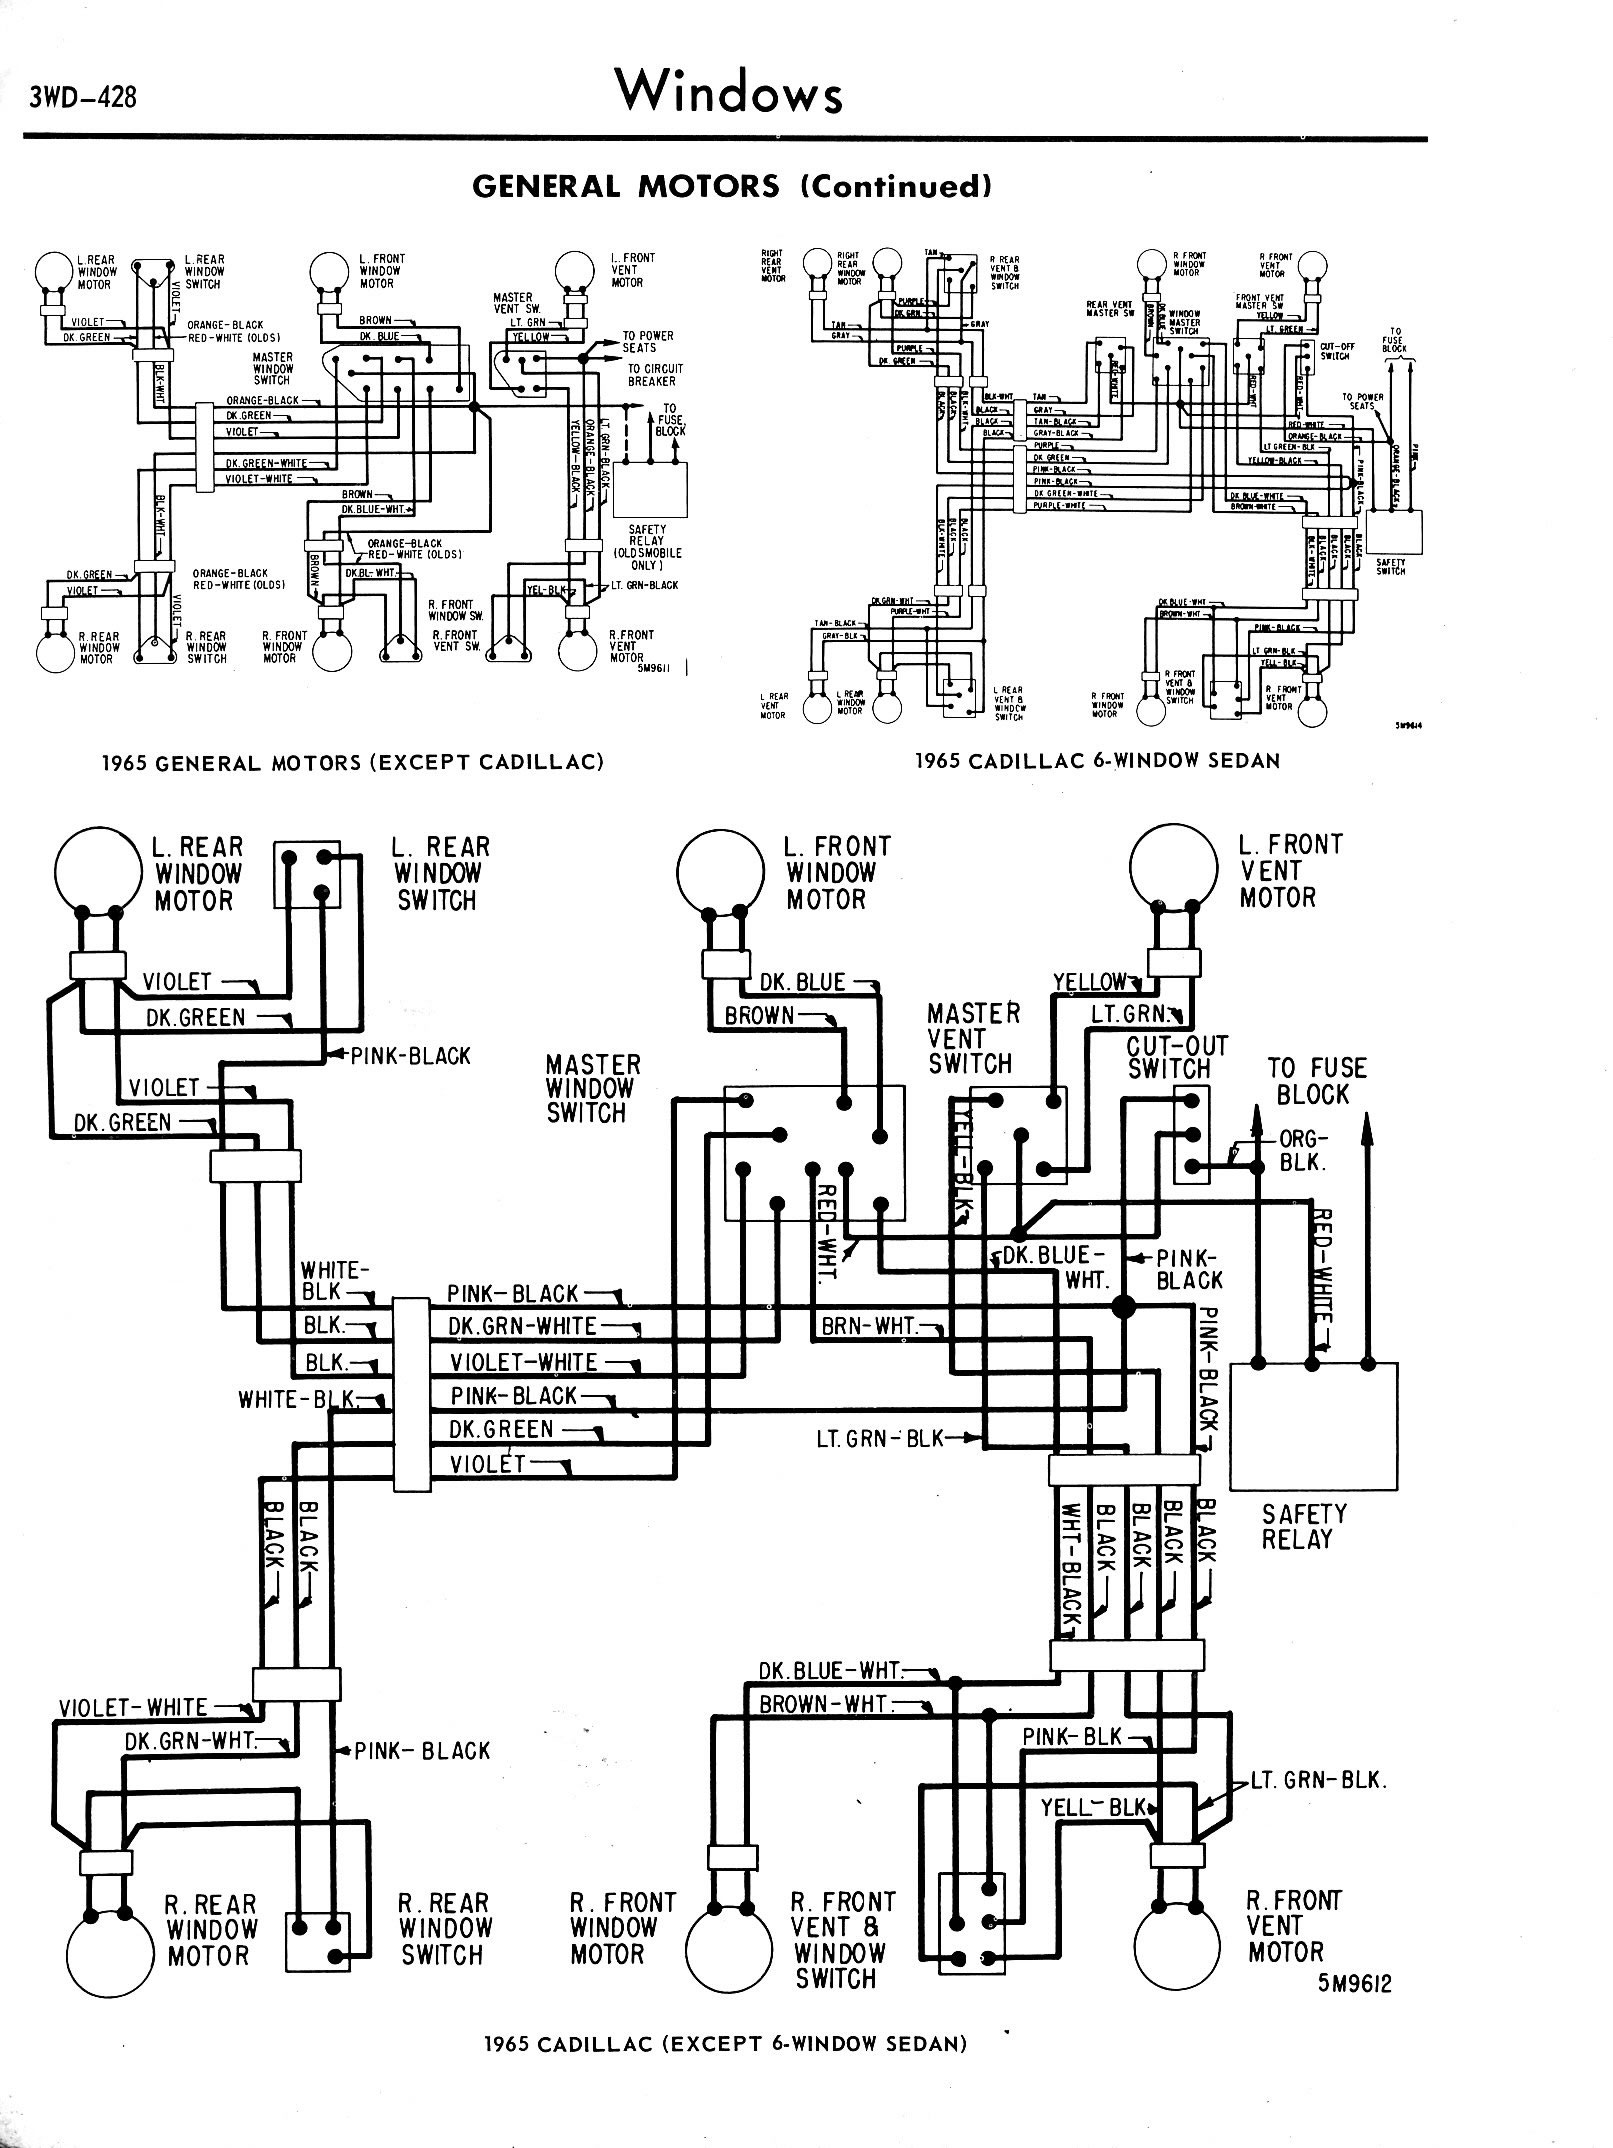 3WD-428_jpg  Chevy Turn Signal Wiring Diagram on union pacific, for old jeep, street rod, polaris rzr,